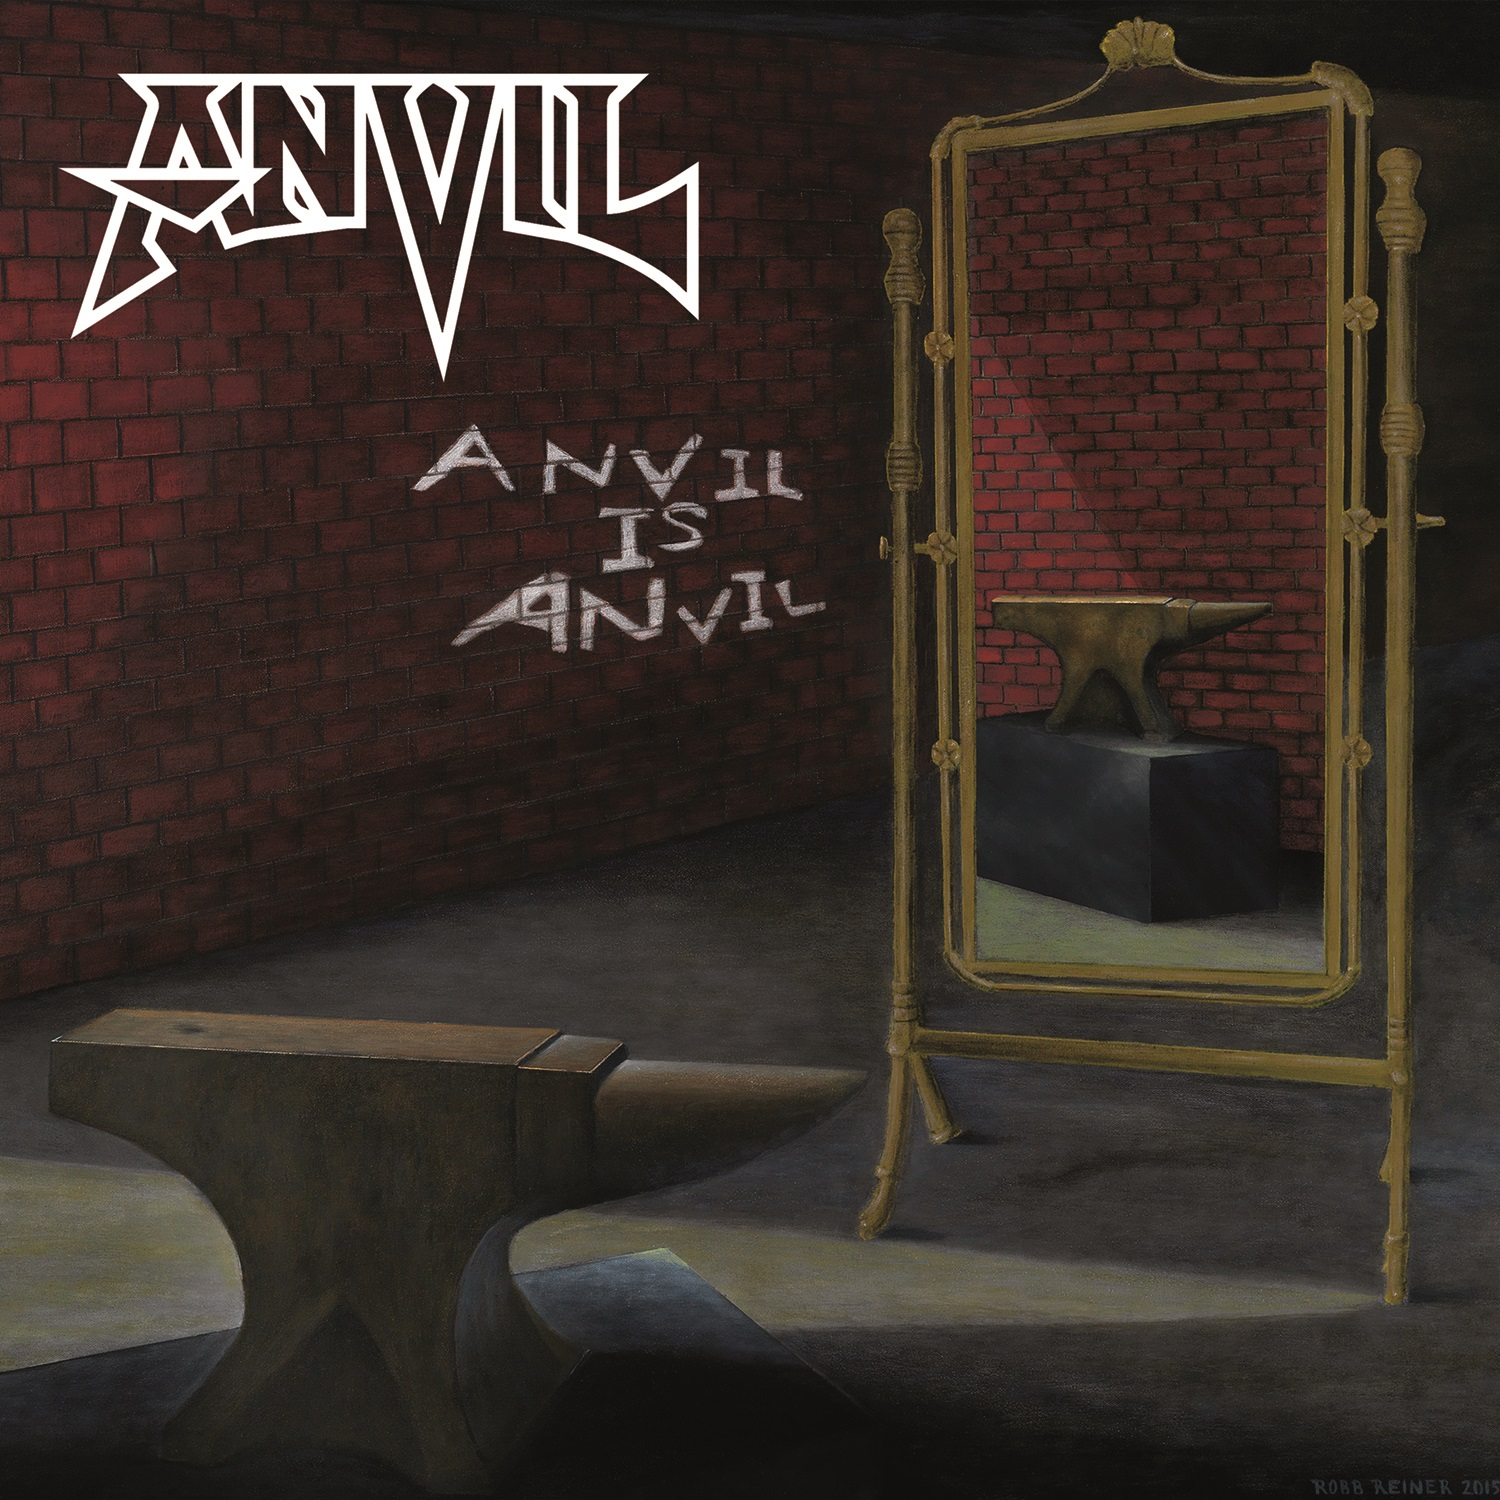 Anvil Anvil Is Anvil Review Angry Metal Guy